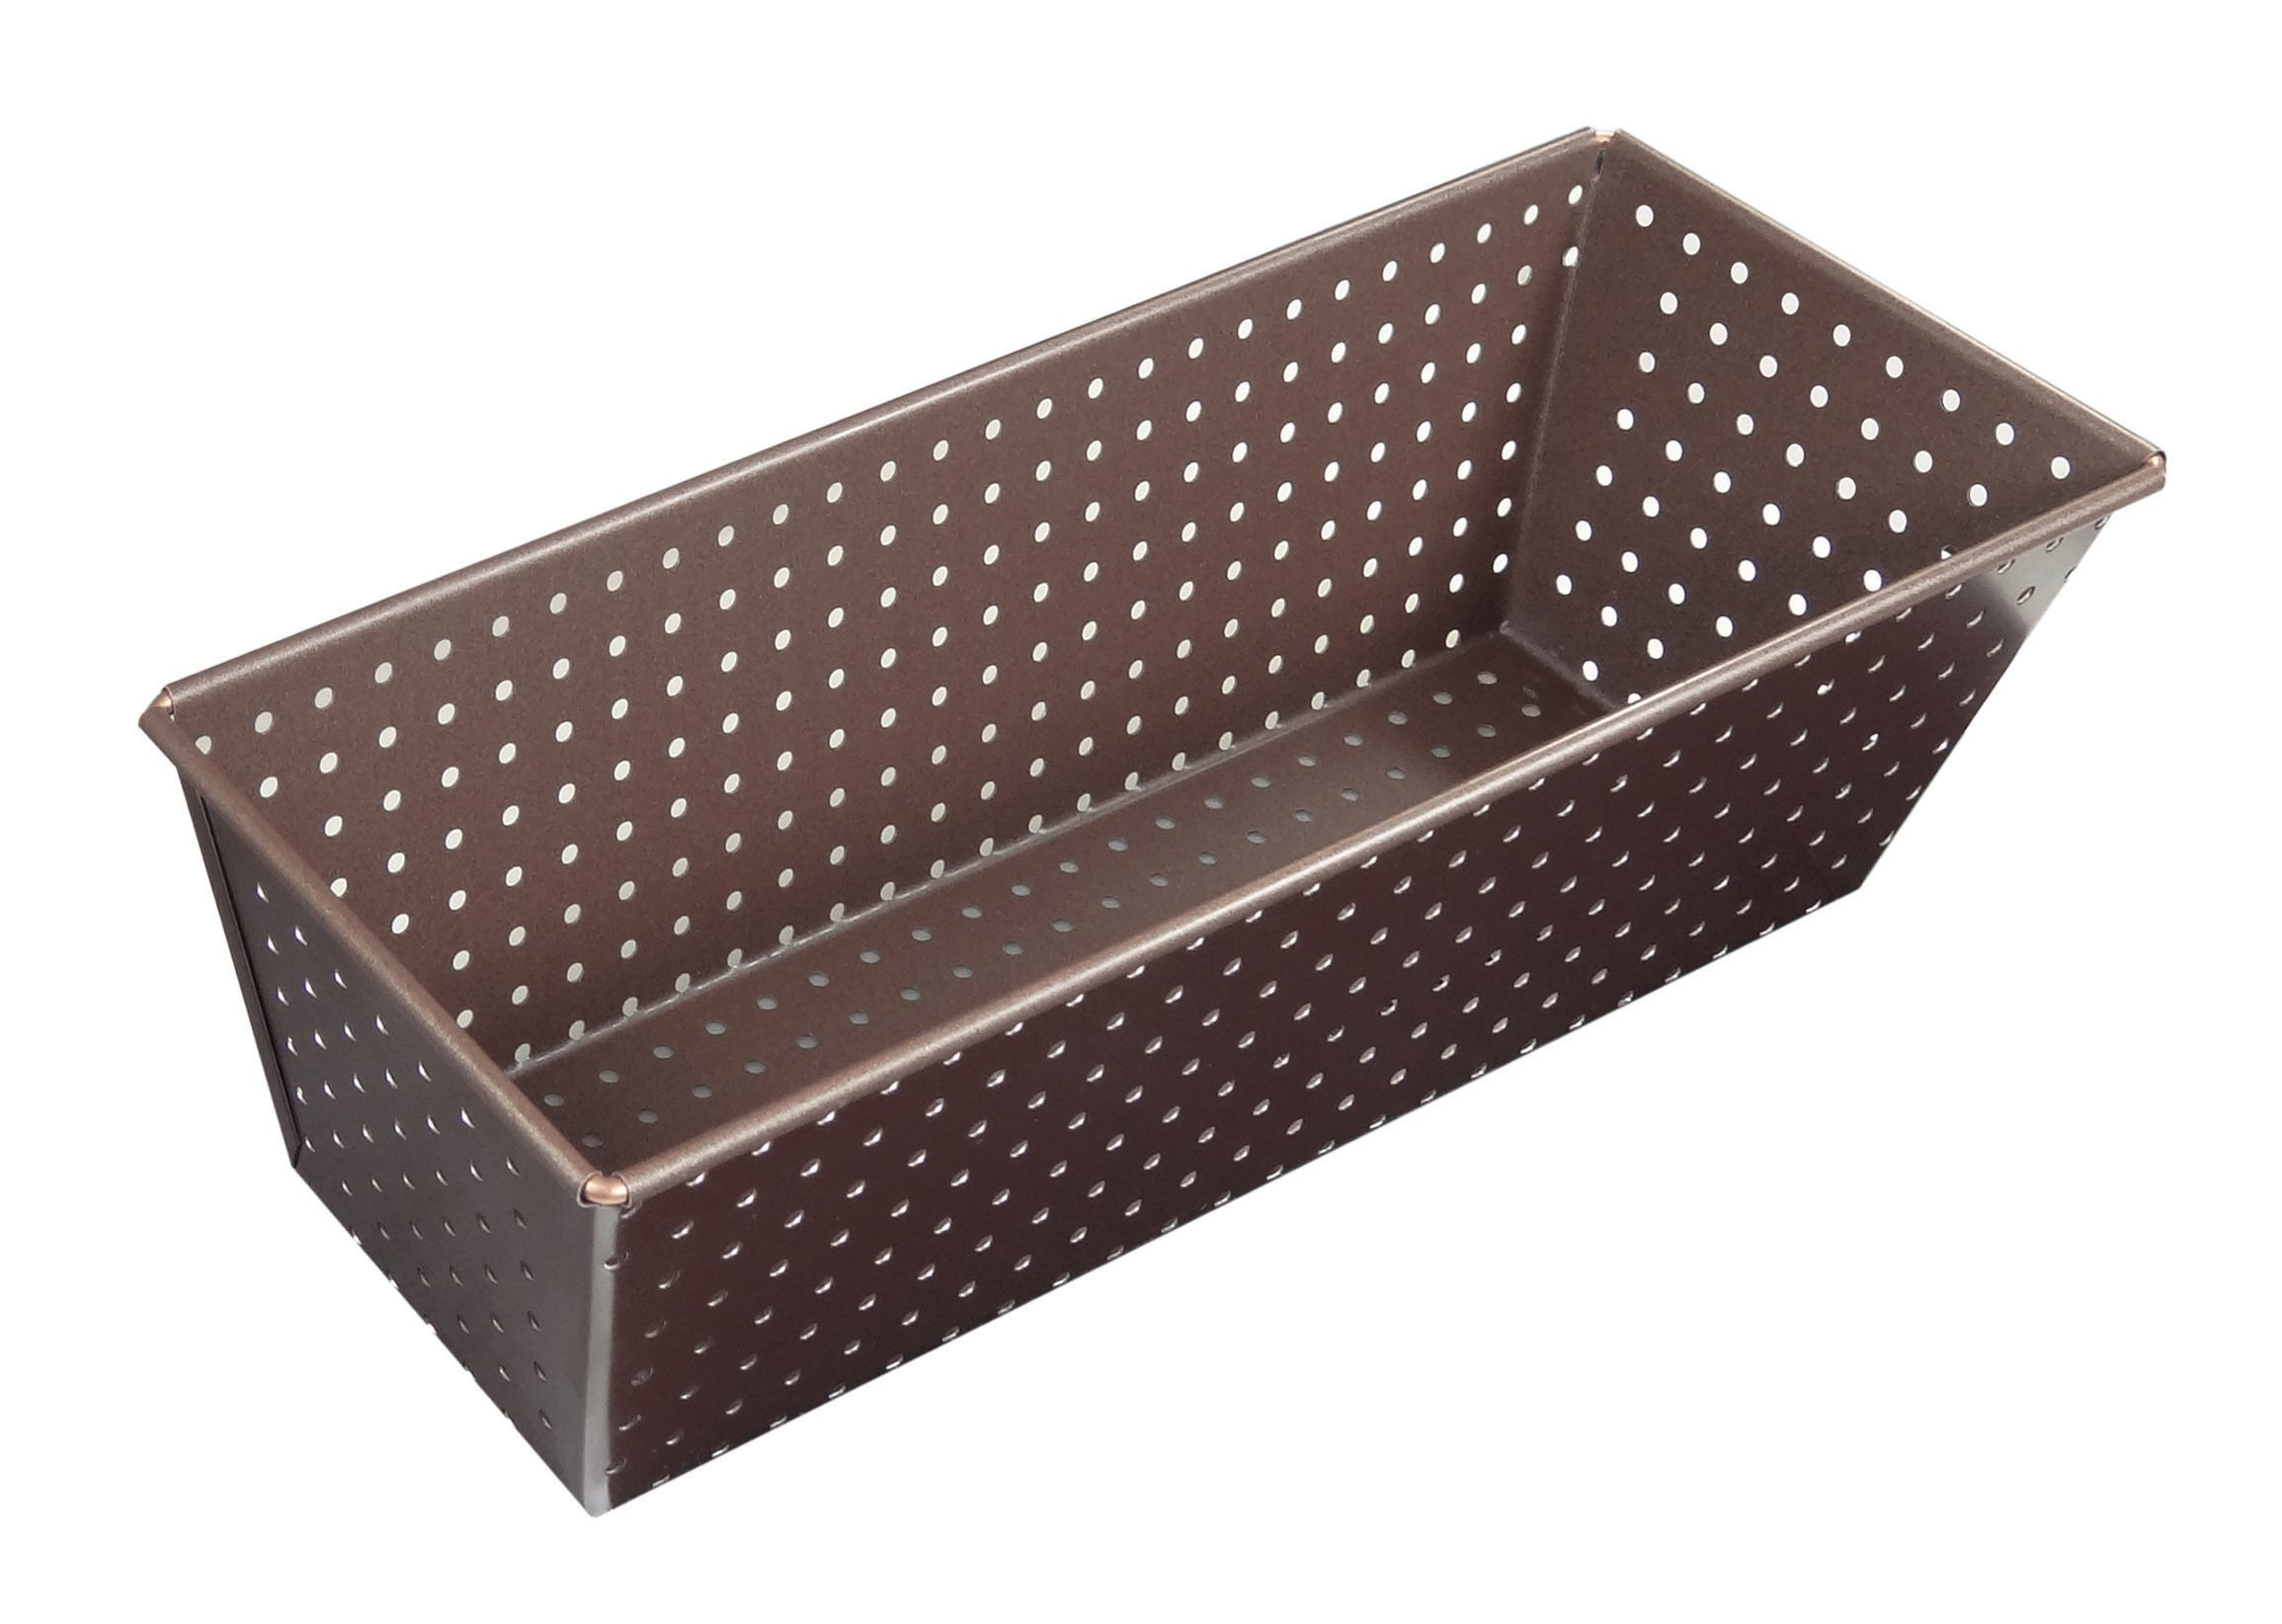 Paderno World Cuisine A4982314 Non-Stick Perforated Loaf Pan, Brown